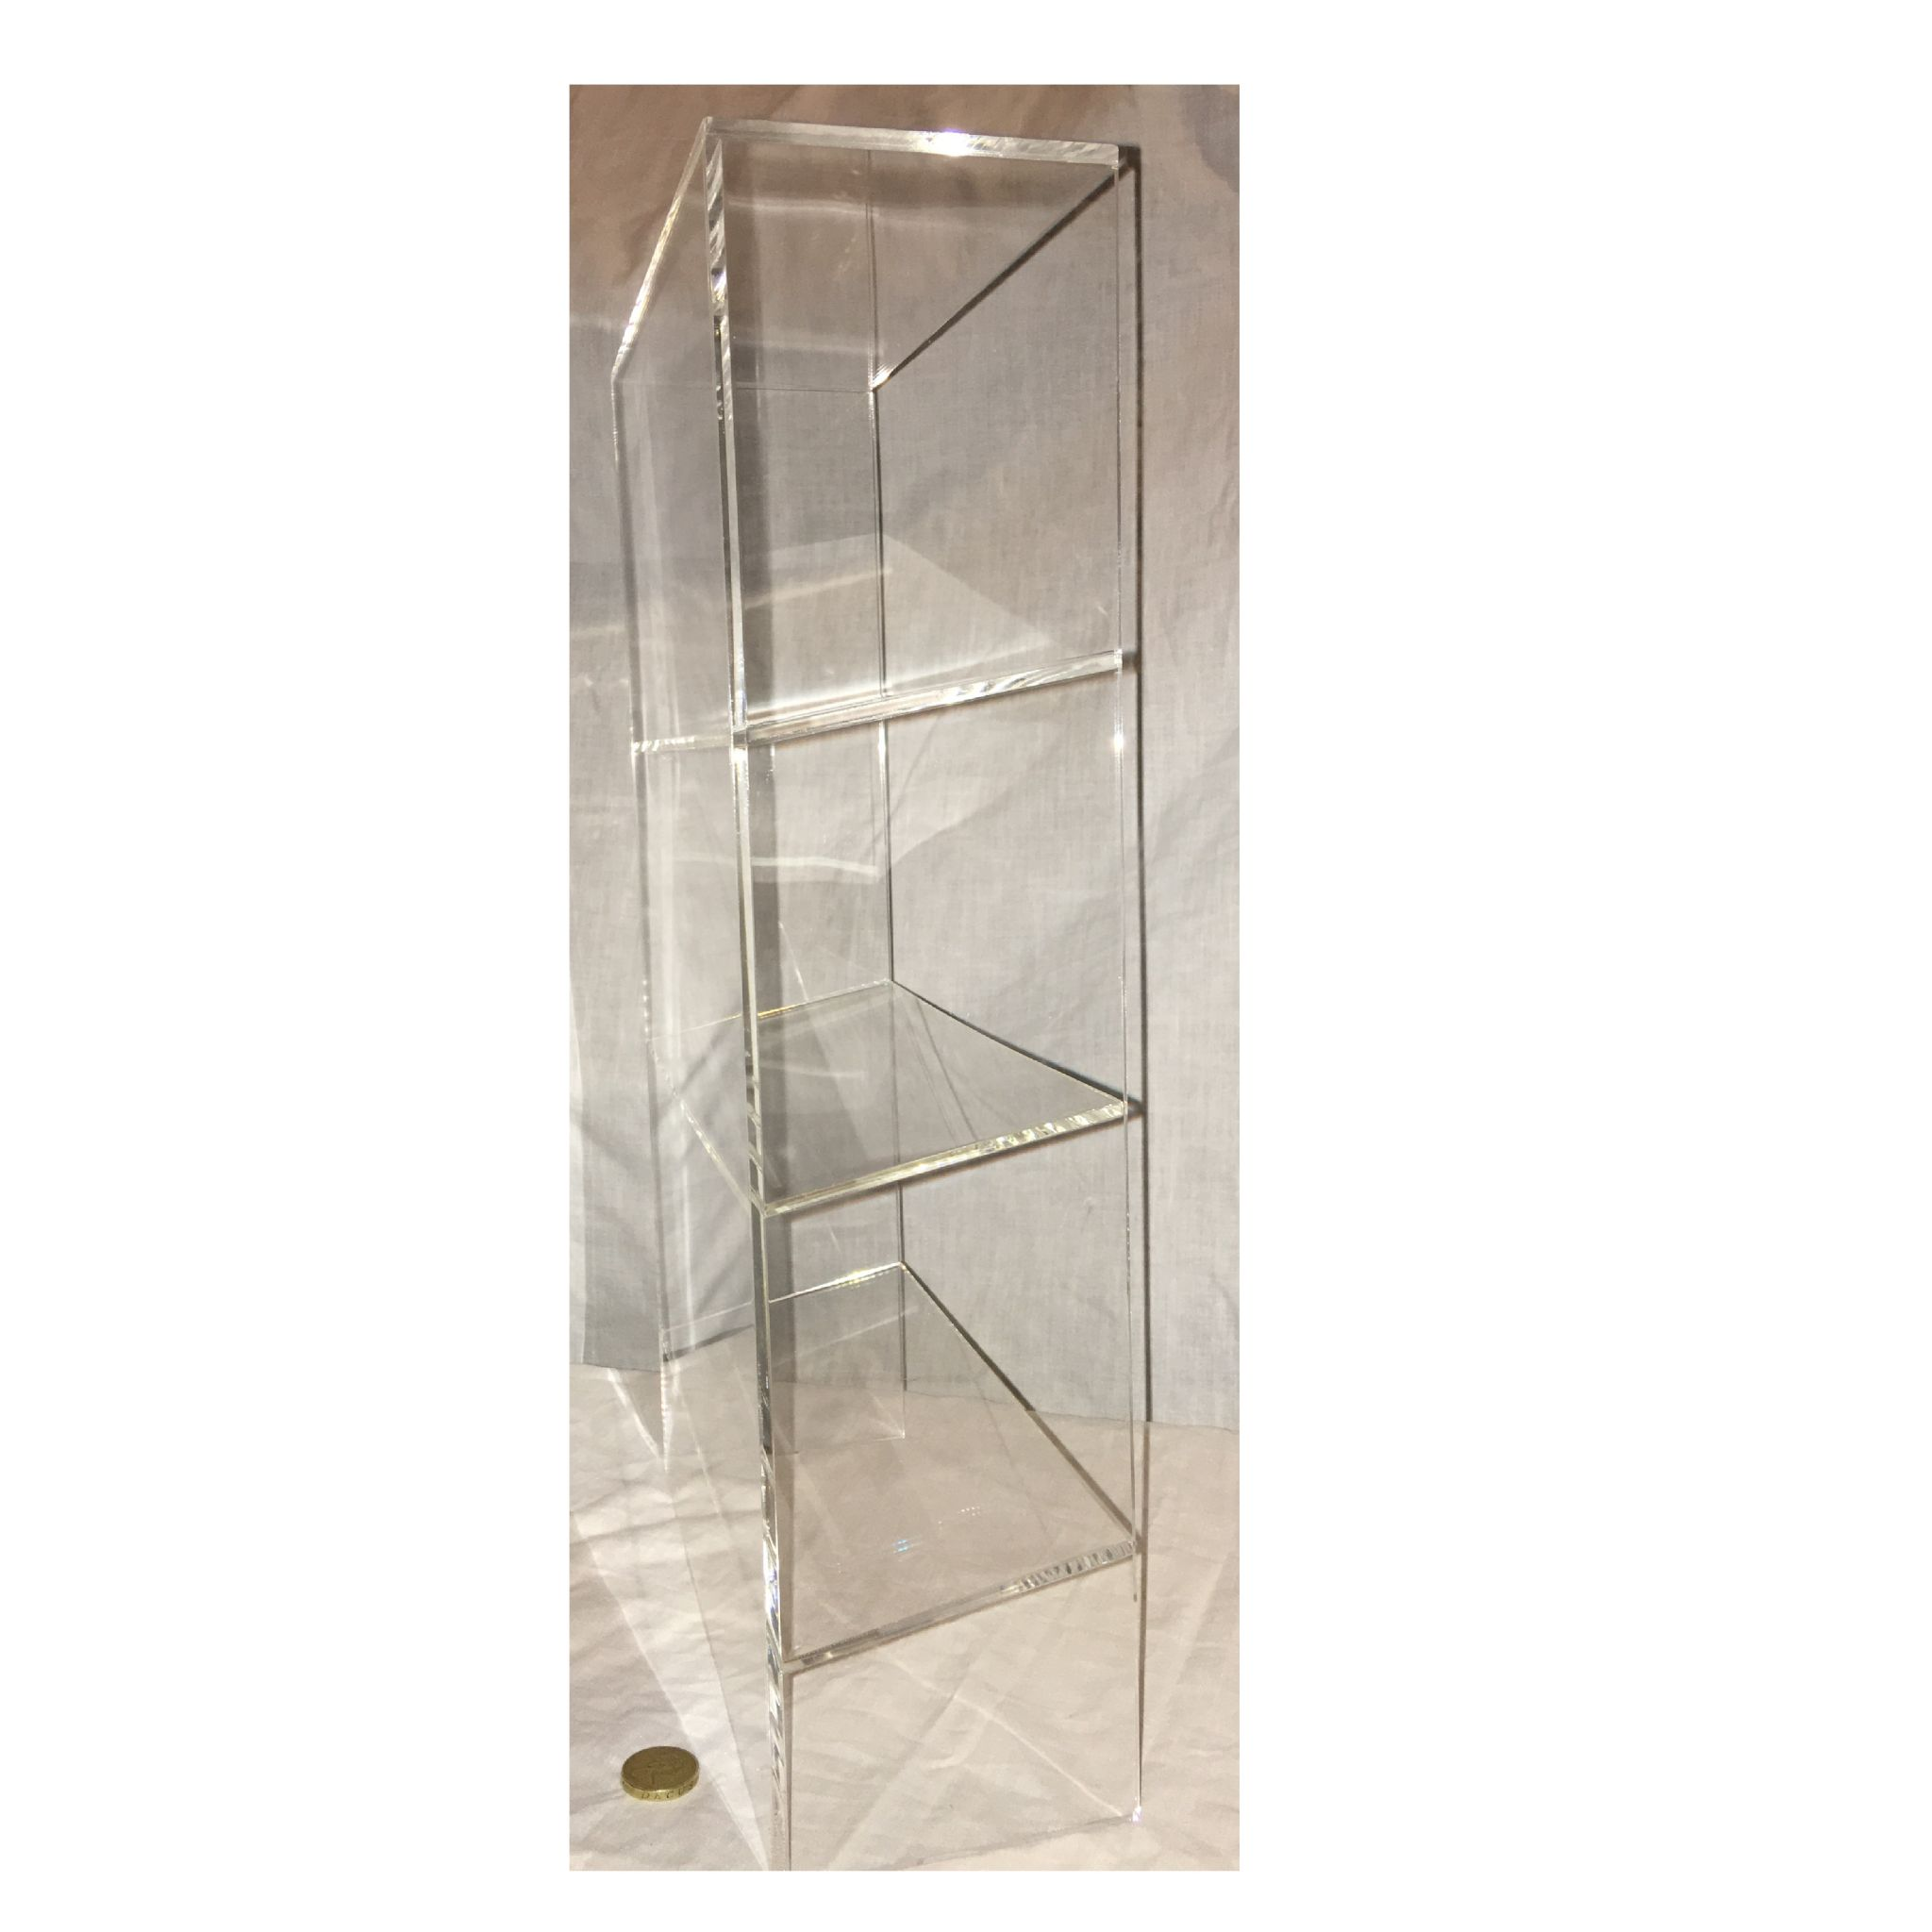 Acrylic Shelves Display Cases 28 Images Acrylic Two